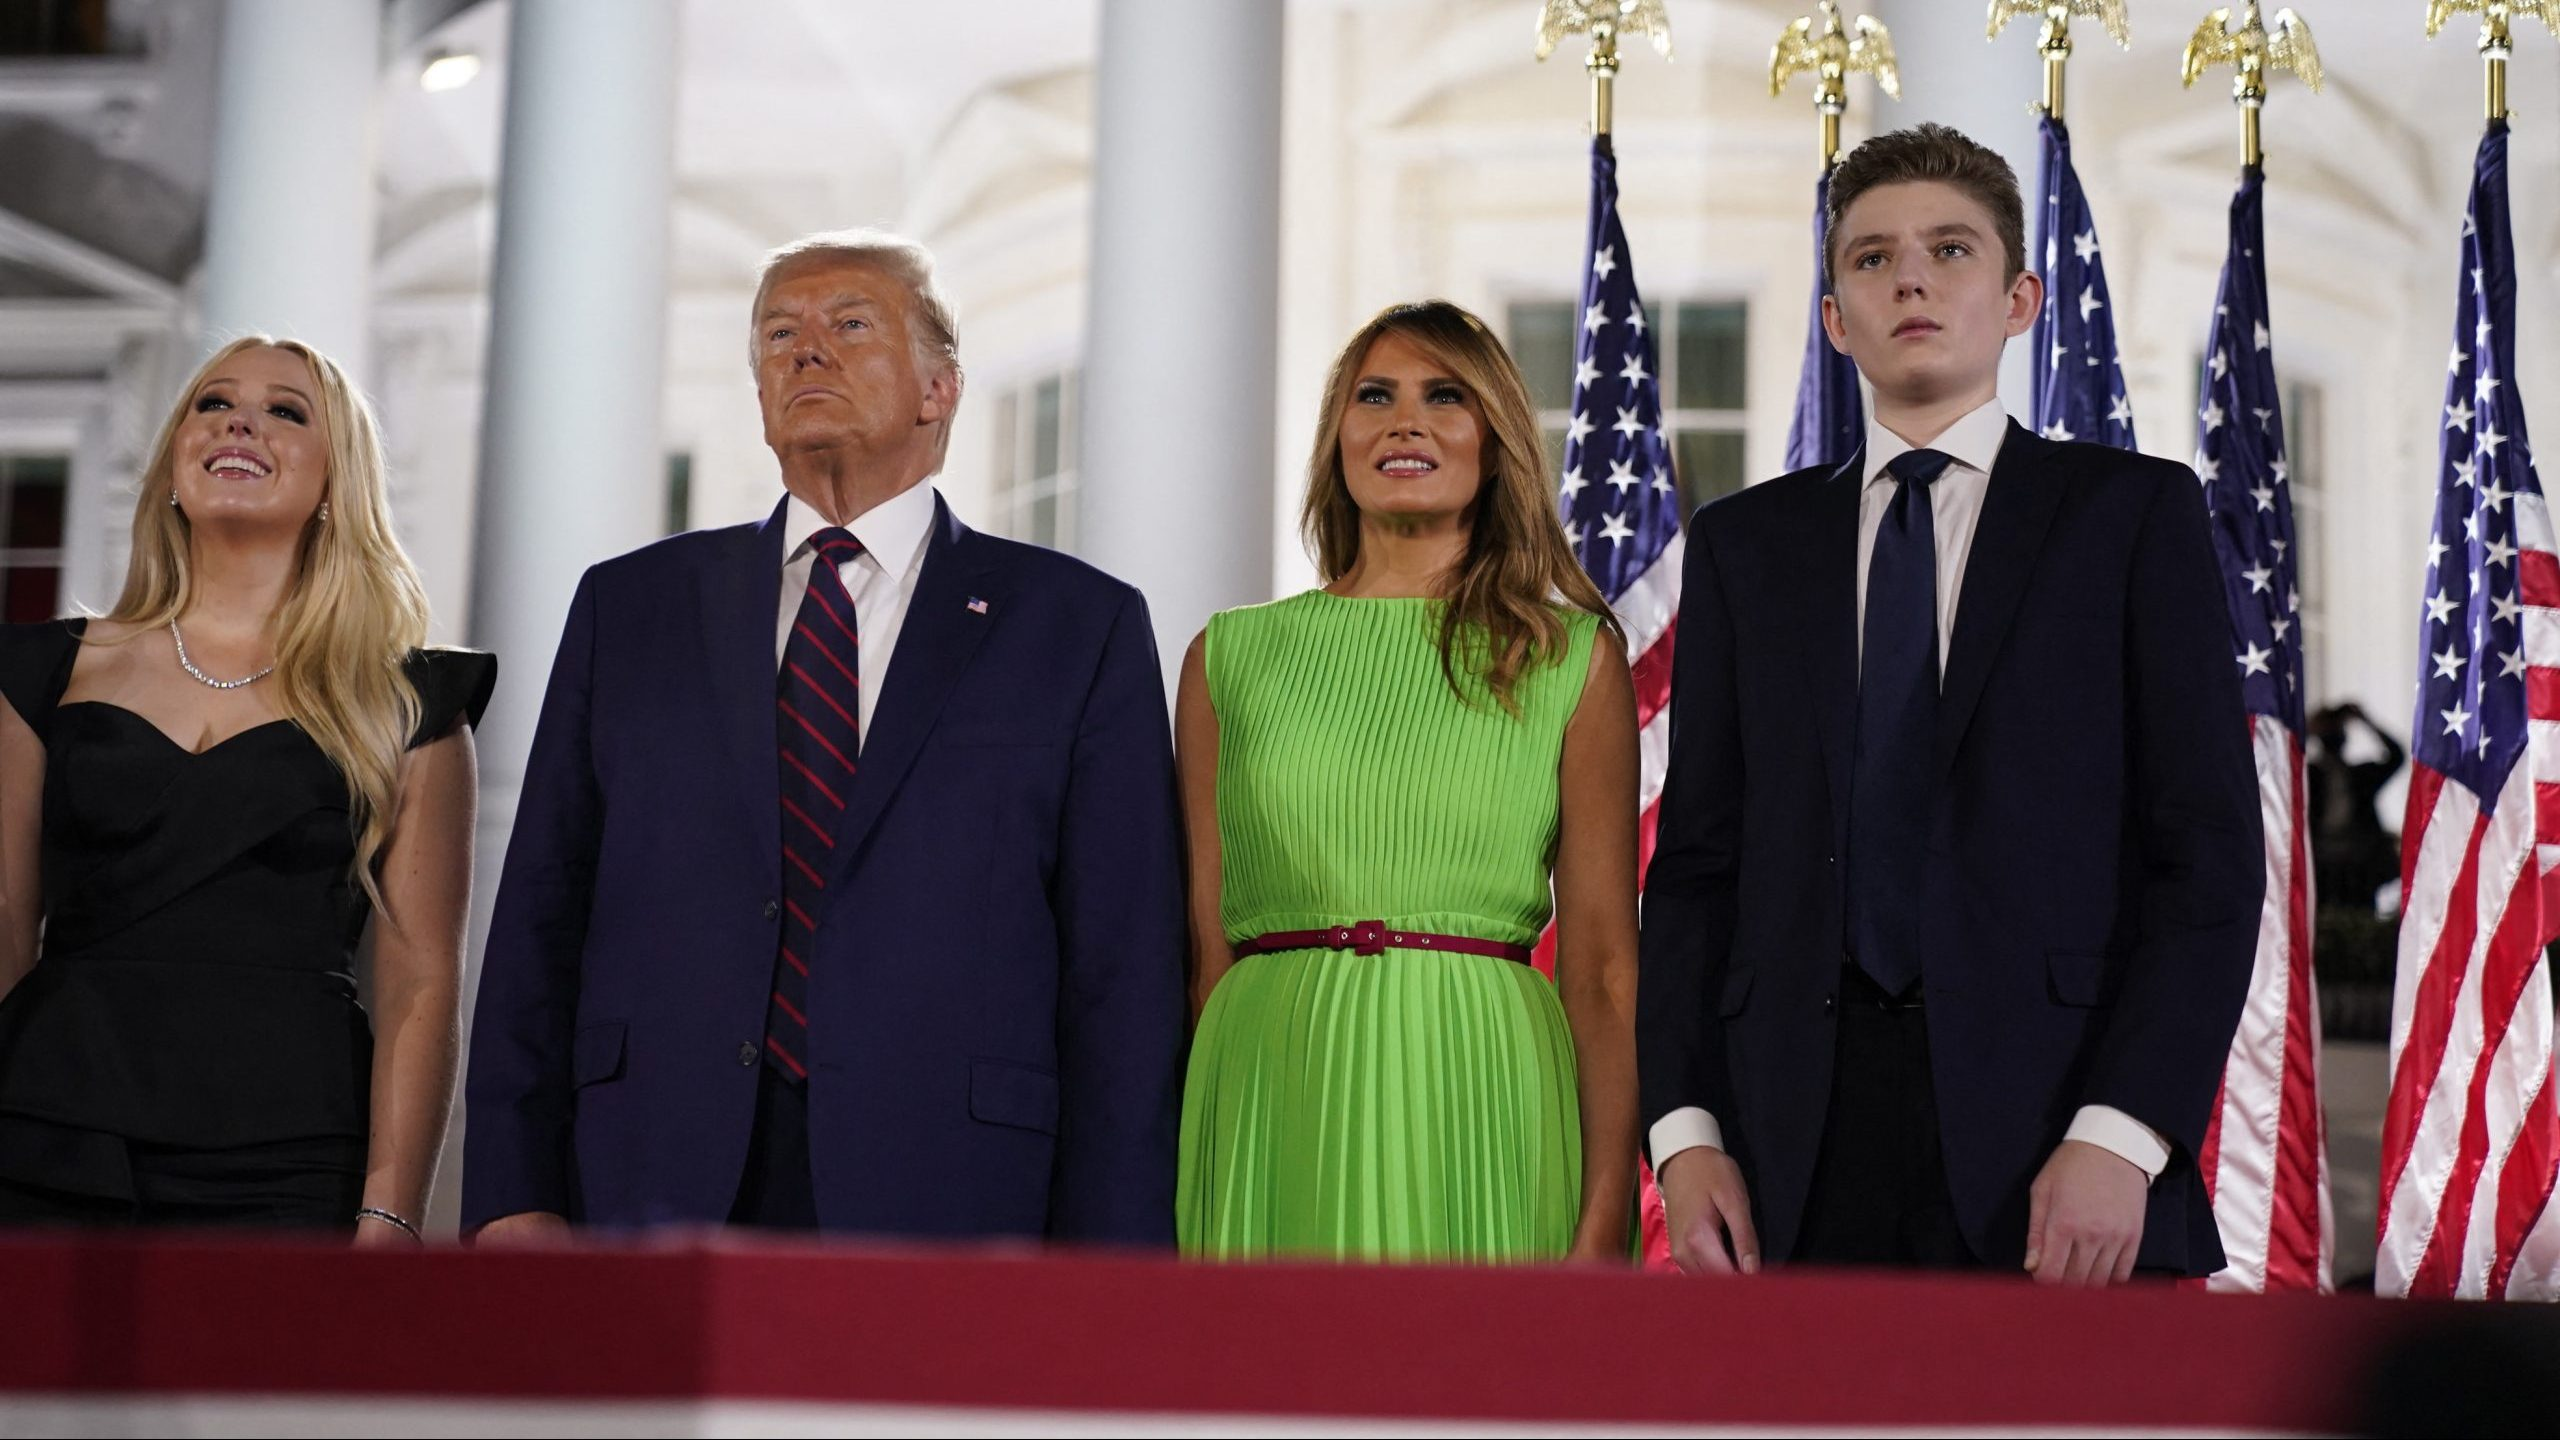 First lady Melania Trump confirms negative COVID-19 test, says son Barron tested positive but is now negative